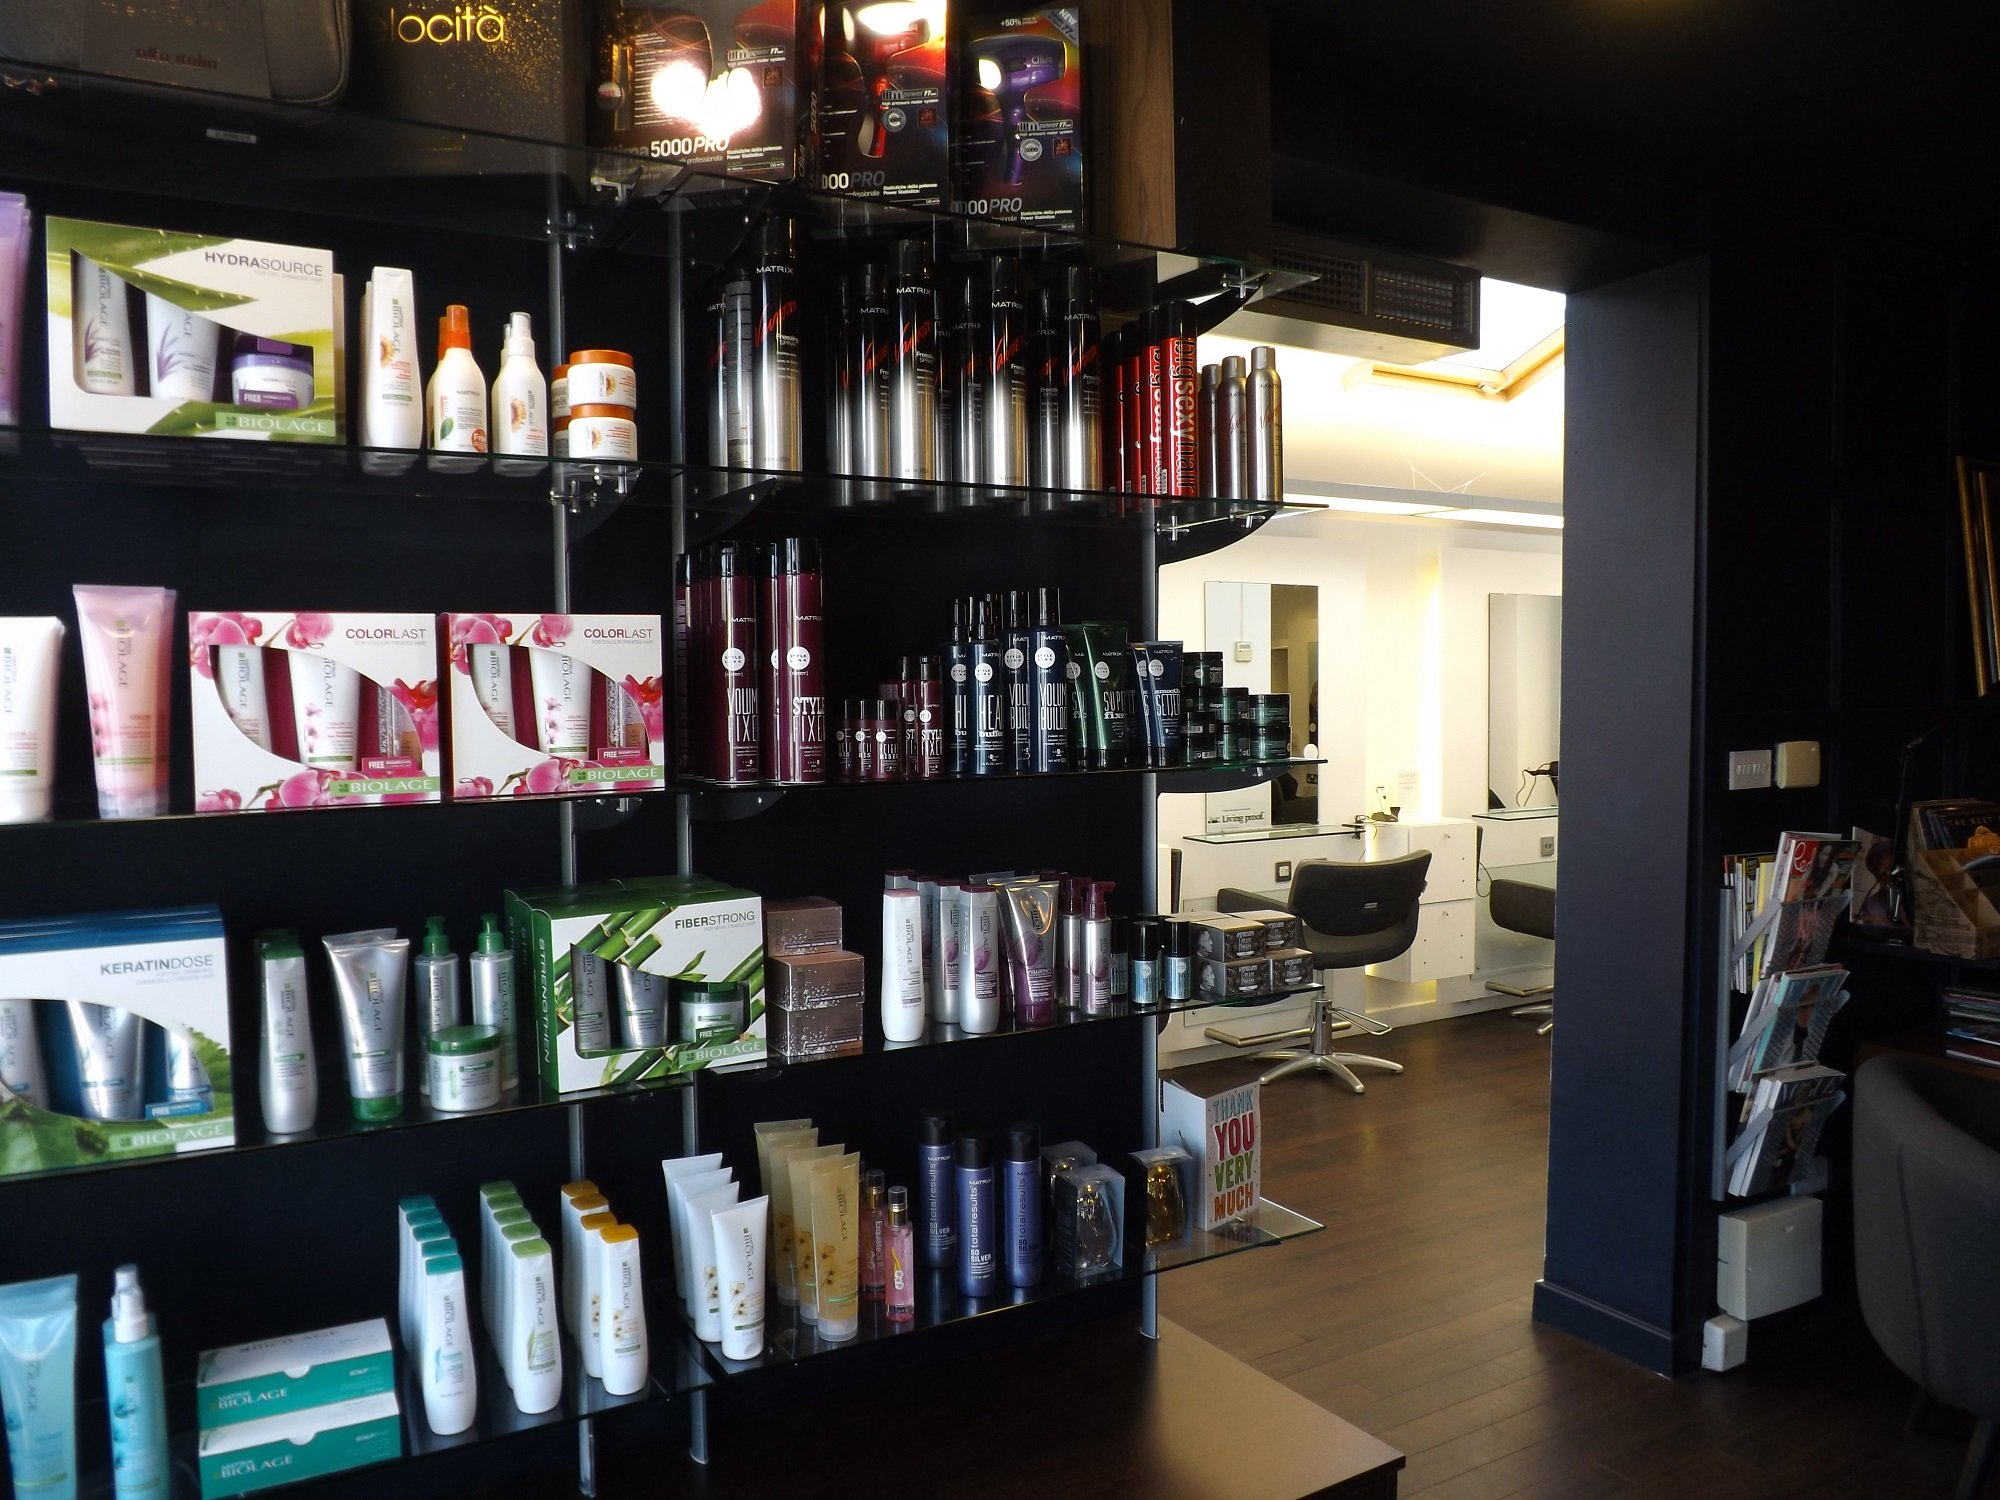 products for sale at bhp hair salon in guiseley leeds